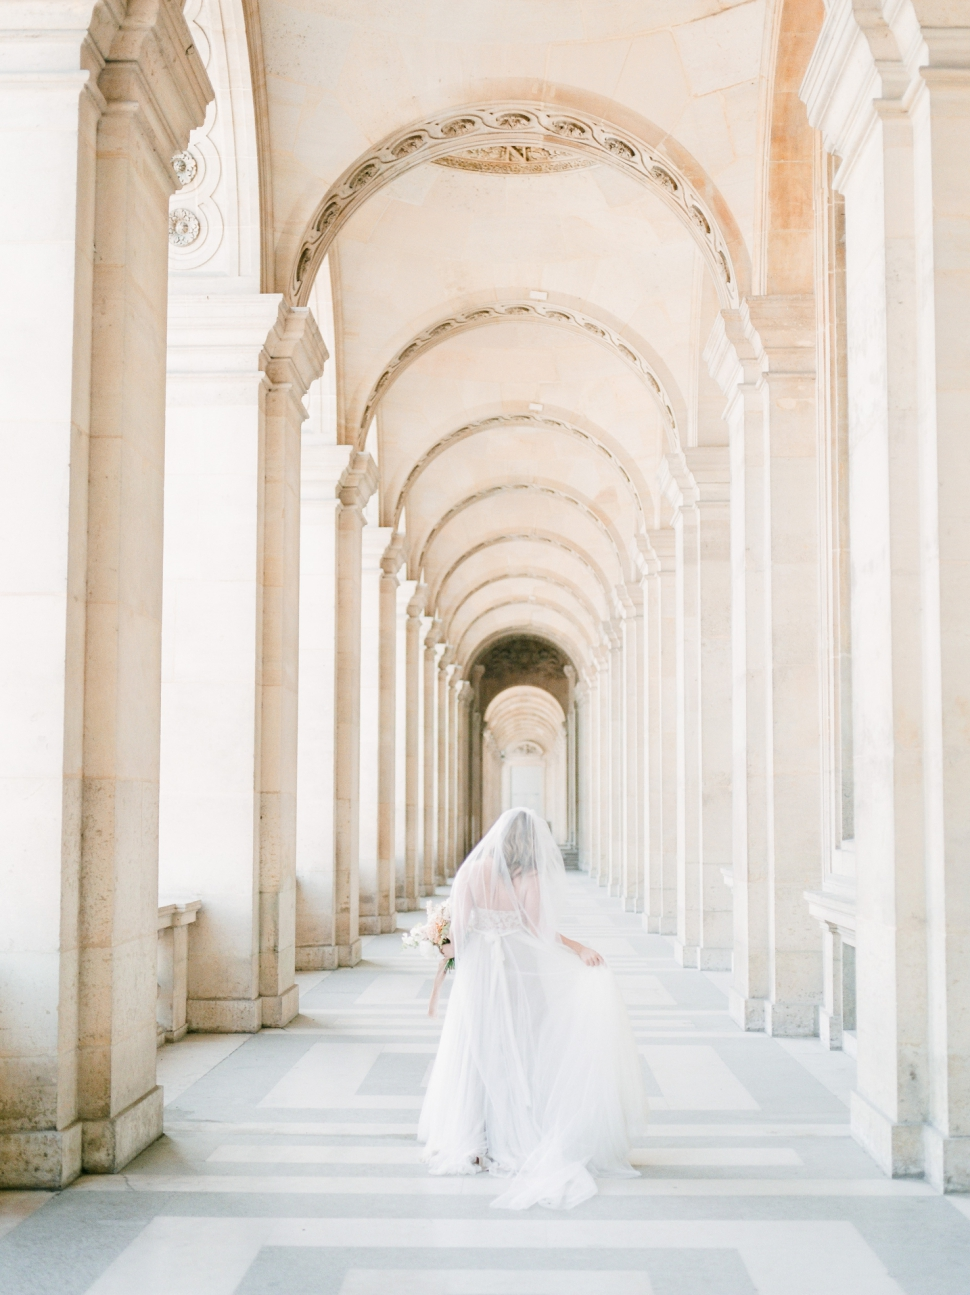 Paris-France-Destination-Wedding-Photographer-Cassi-Claire-Shangri-La-Paris-Wedding-Photos_038.jpg